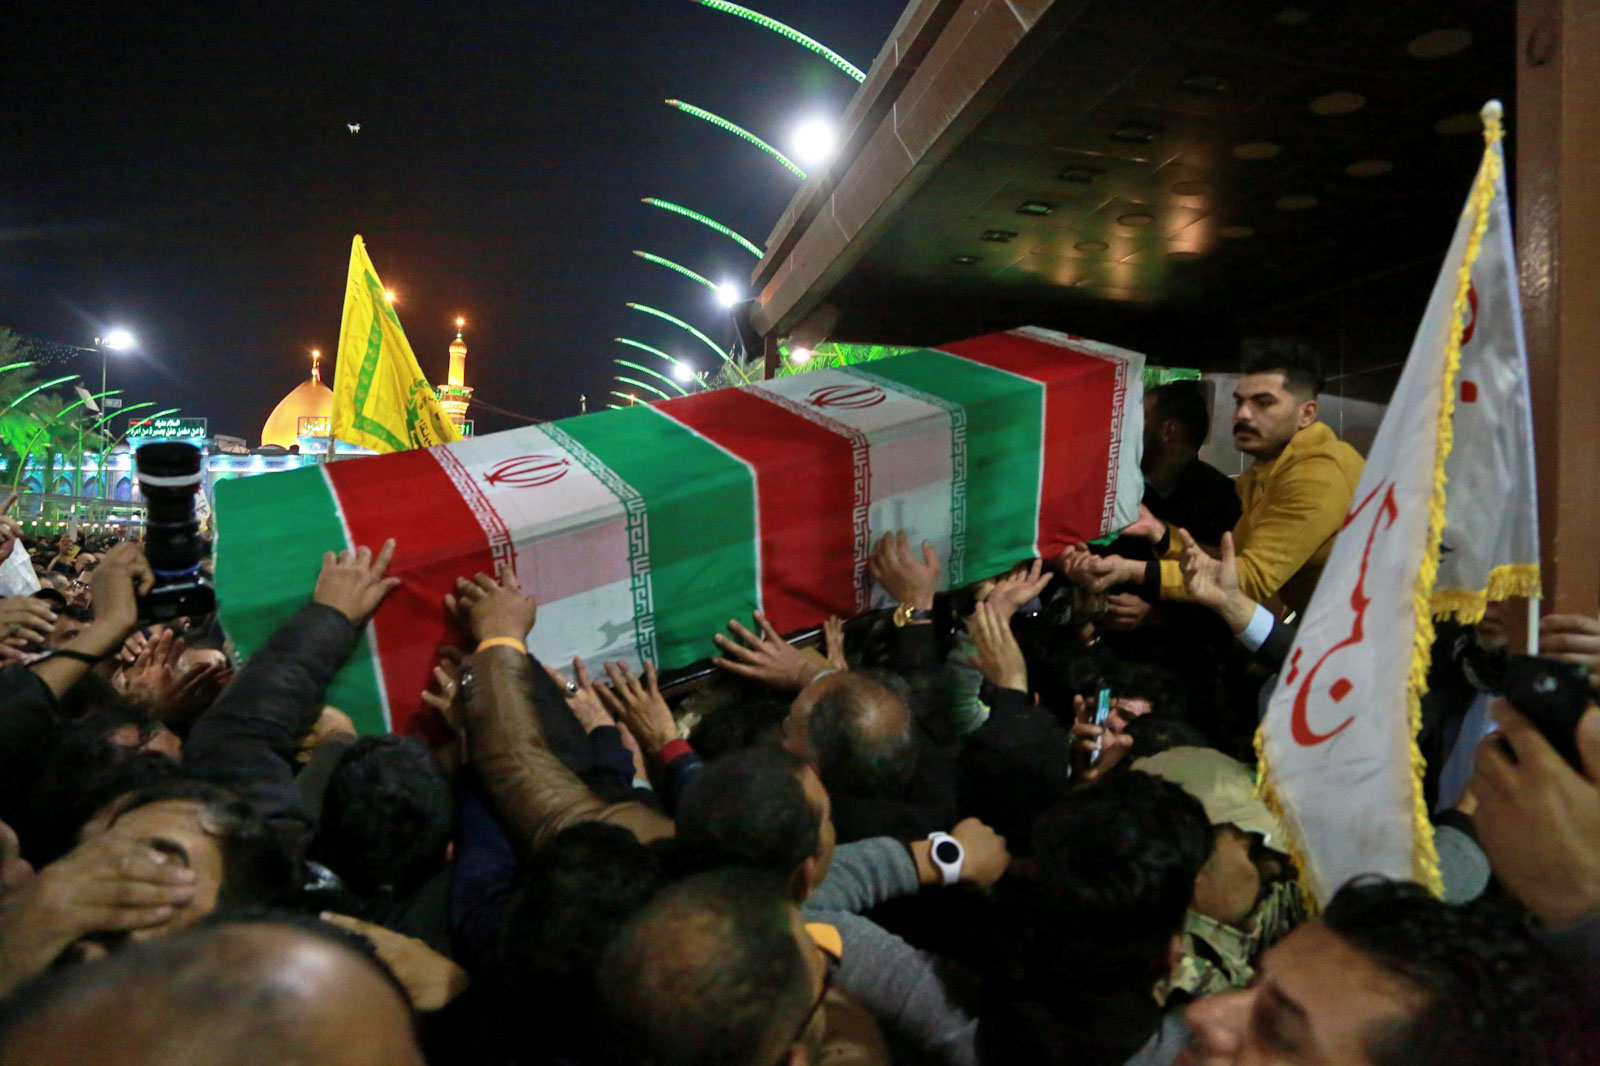 Mourners carry the coffins of Iran's top general Qassem Soleimani during their funeral in Karbala, Iraq, Saturday, Jan. 4, 2020. (AP)